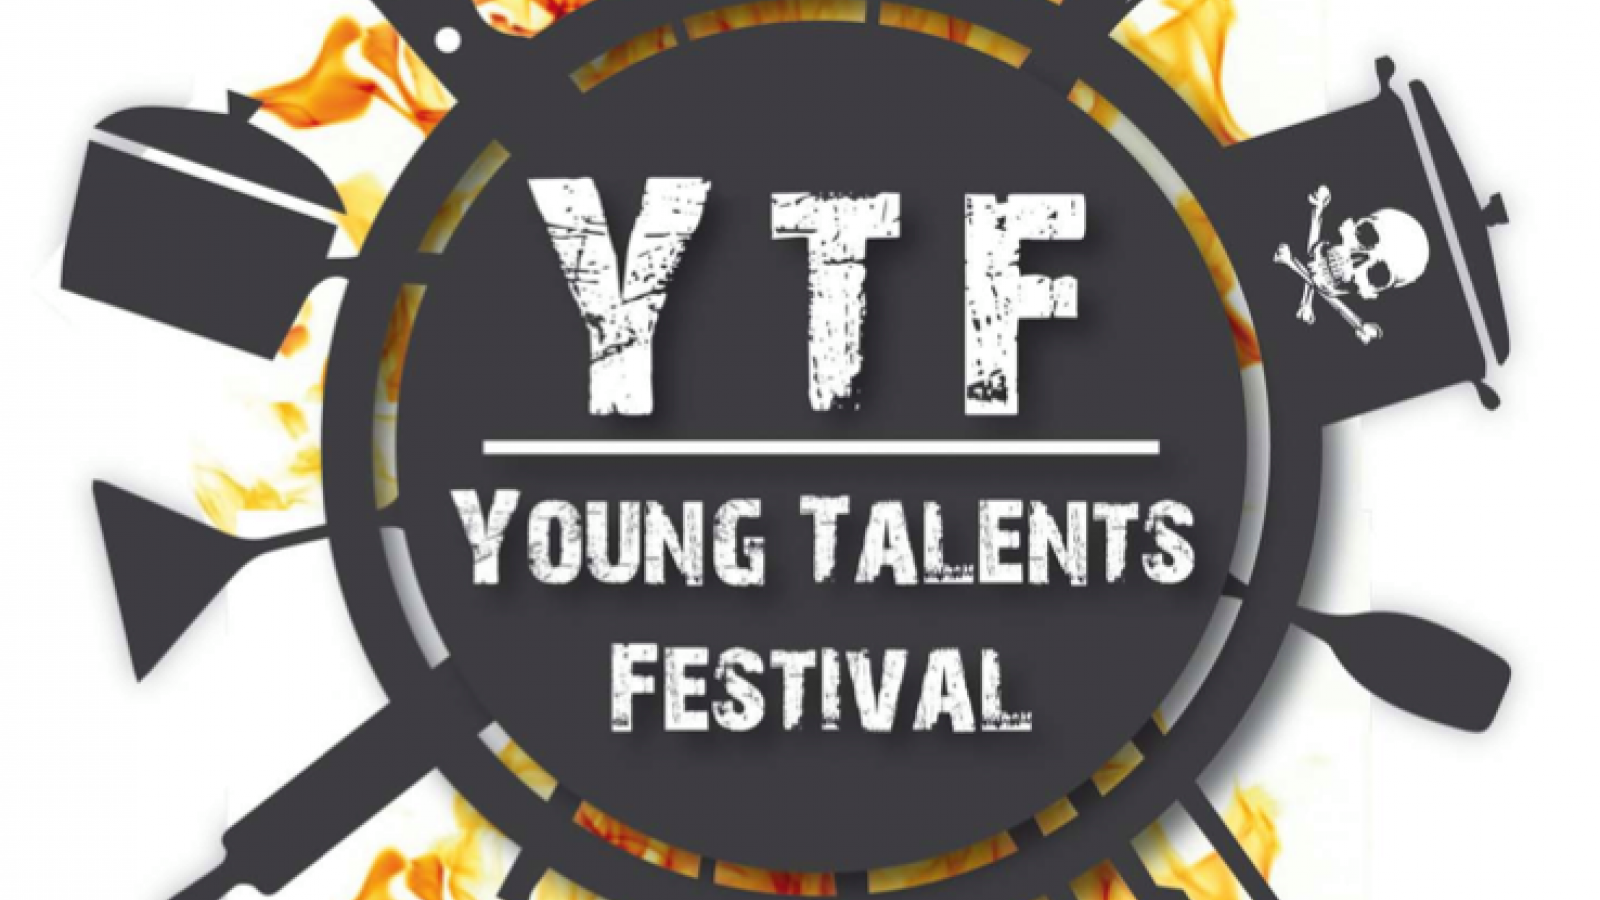 Young Talents Festival